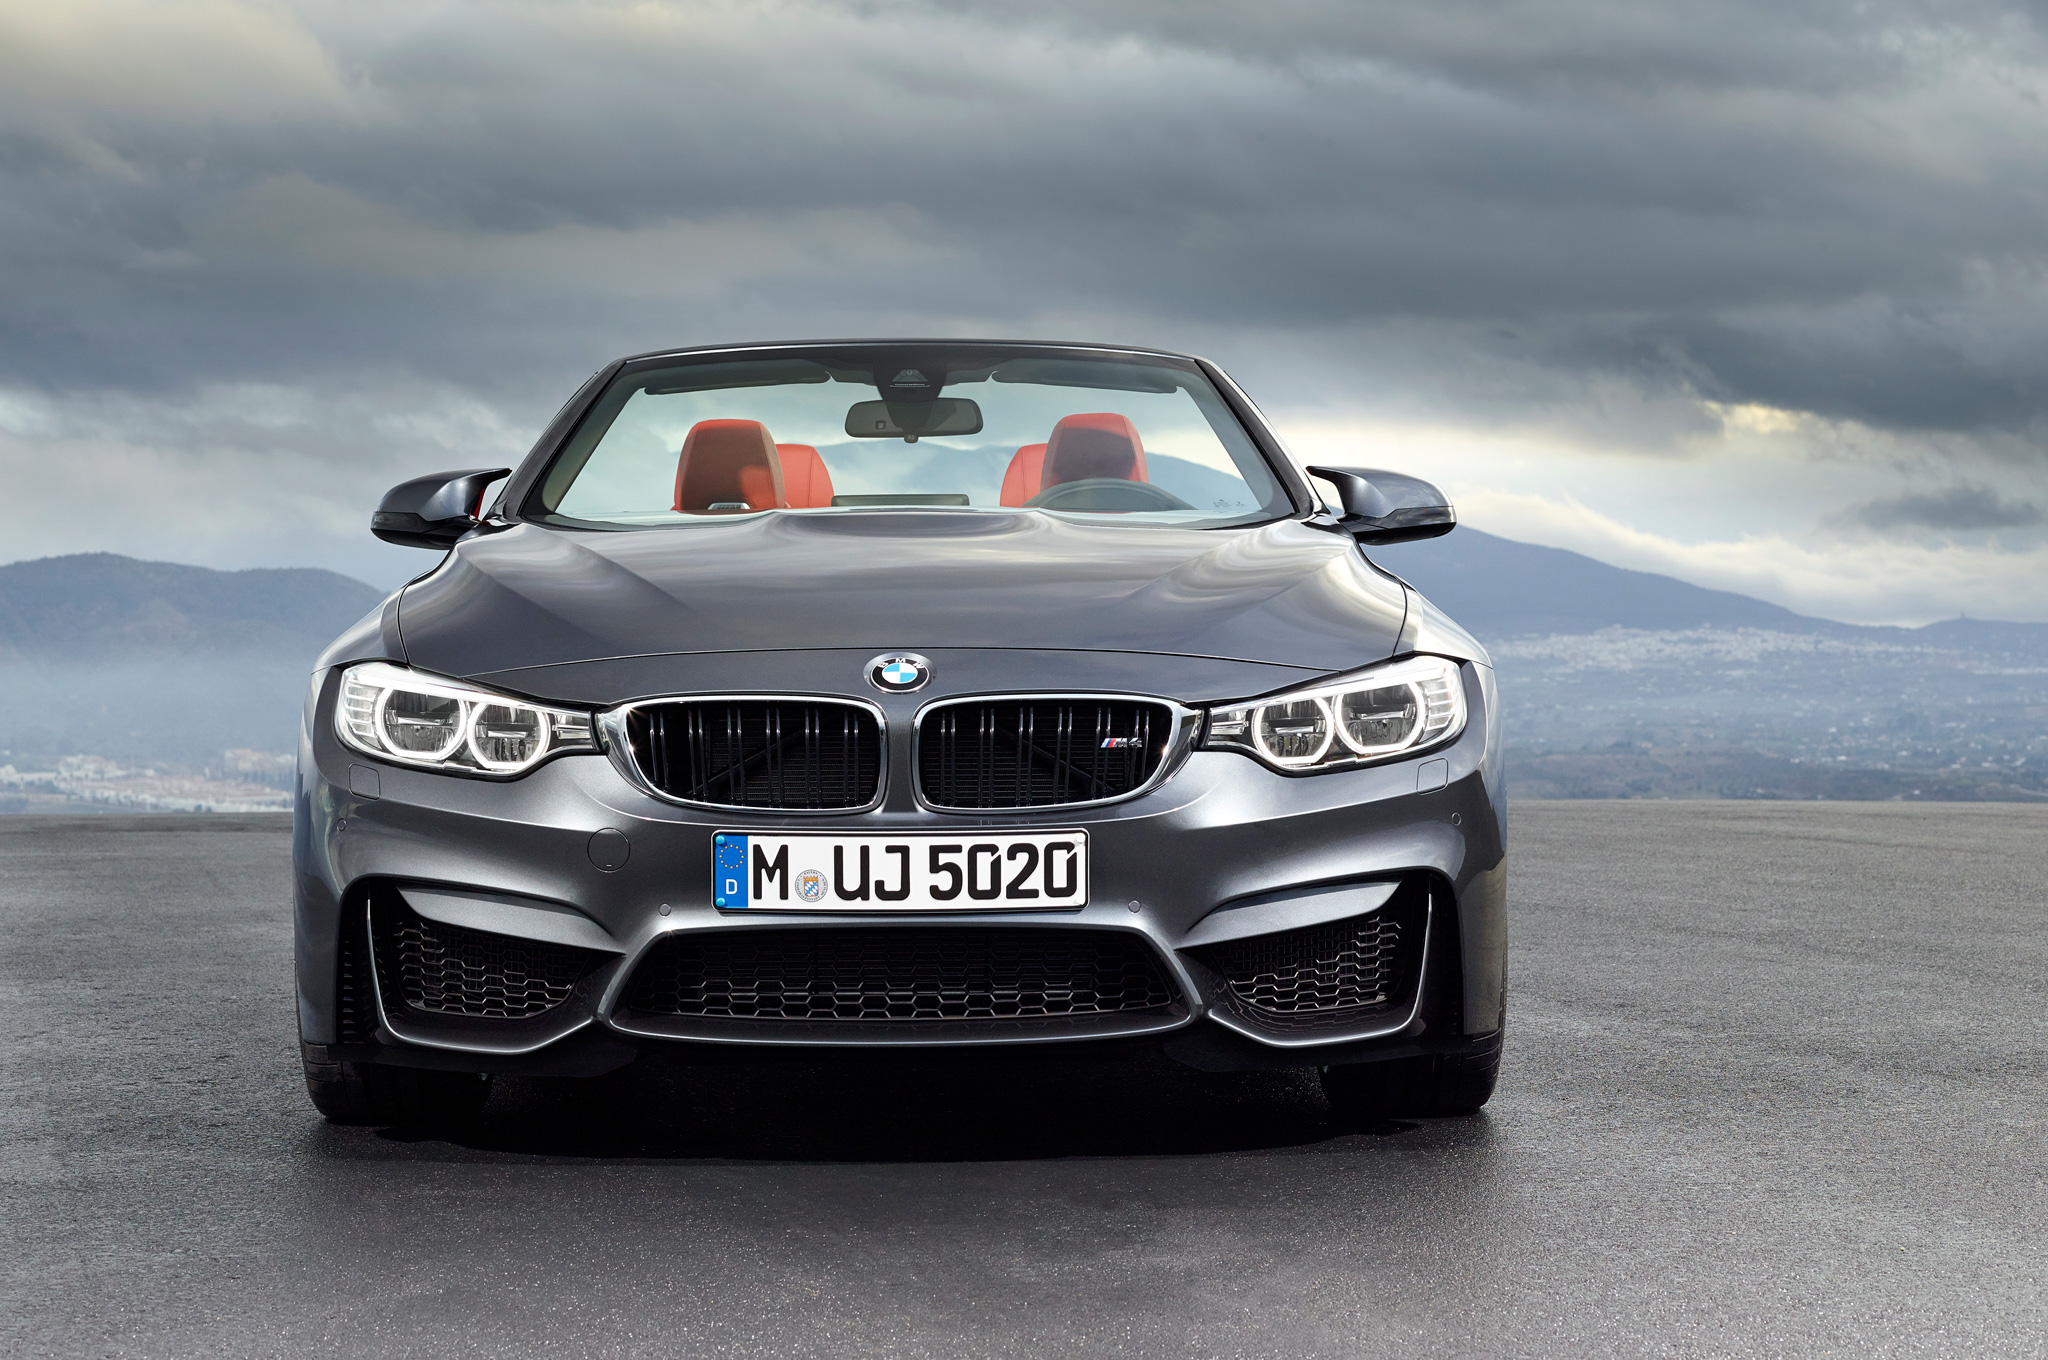 2015 Bmw M4 Convertible Concept Front End (Photo 33 of 50)